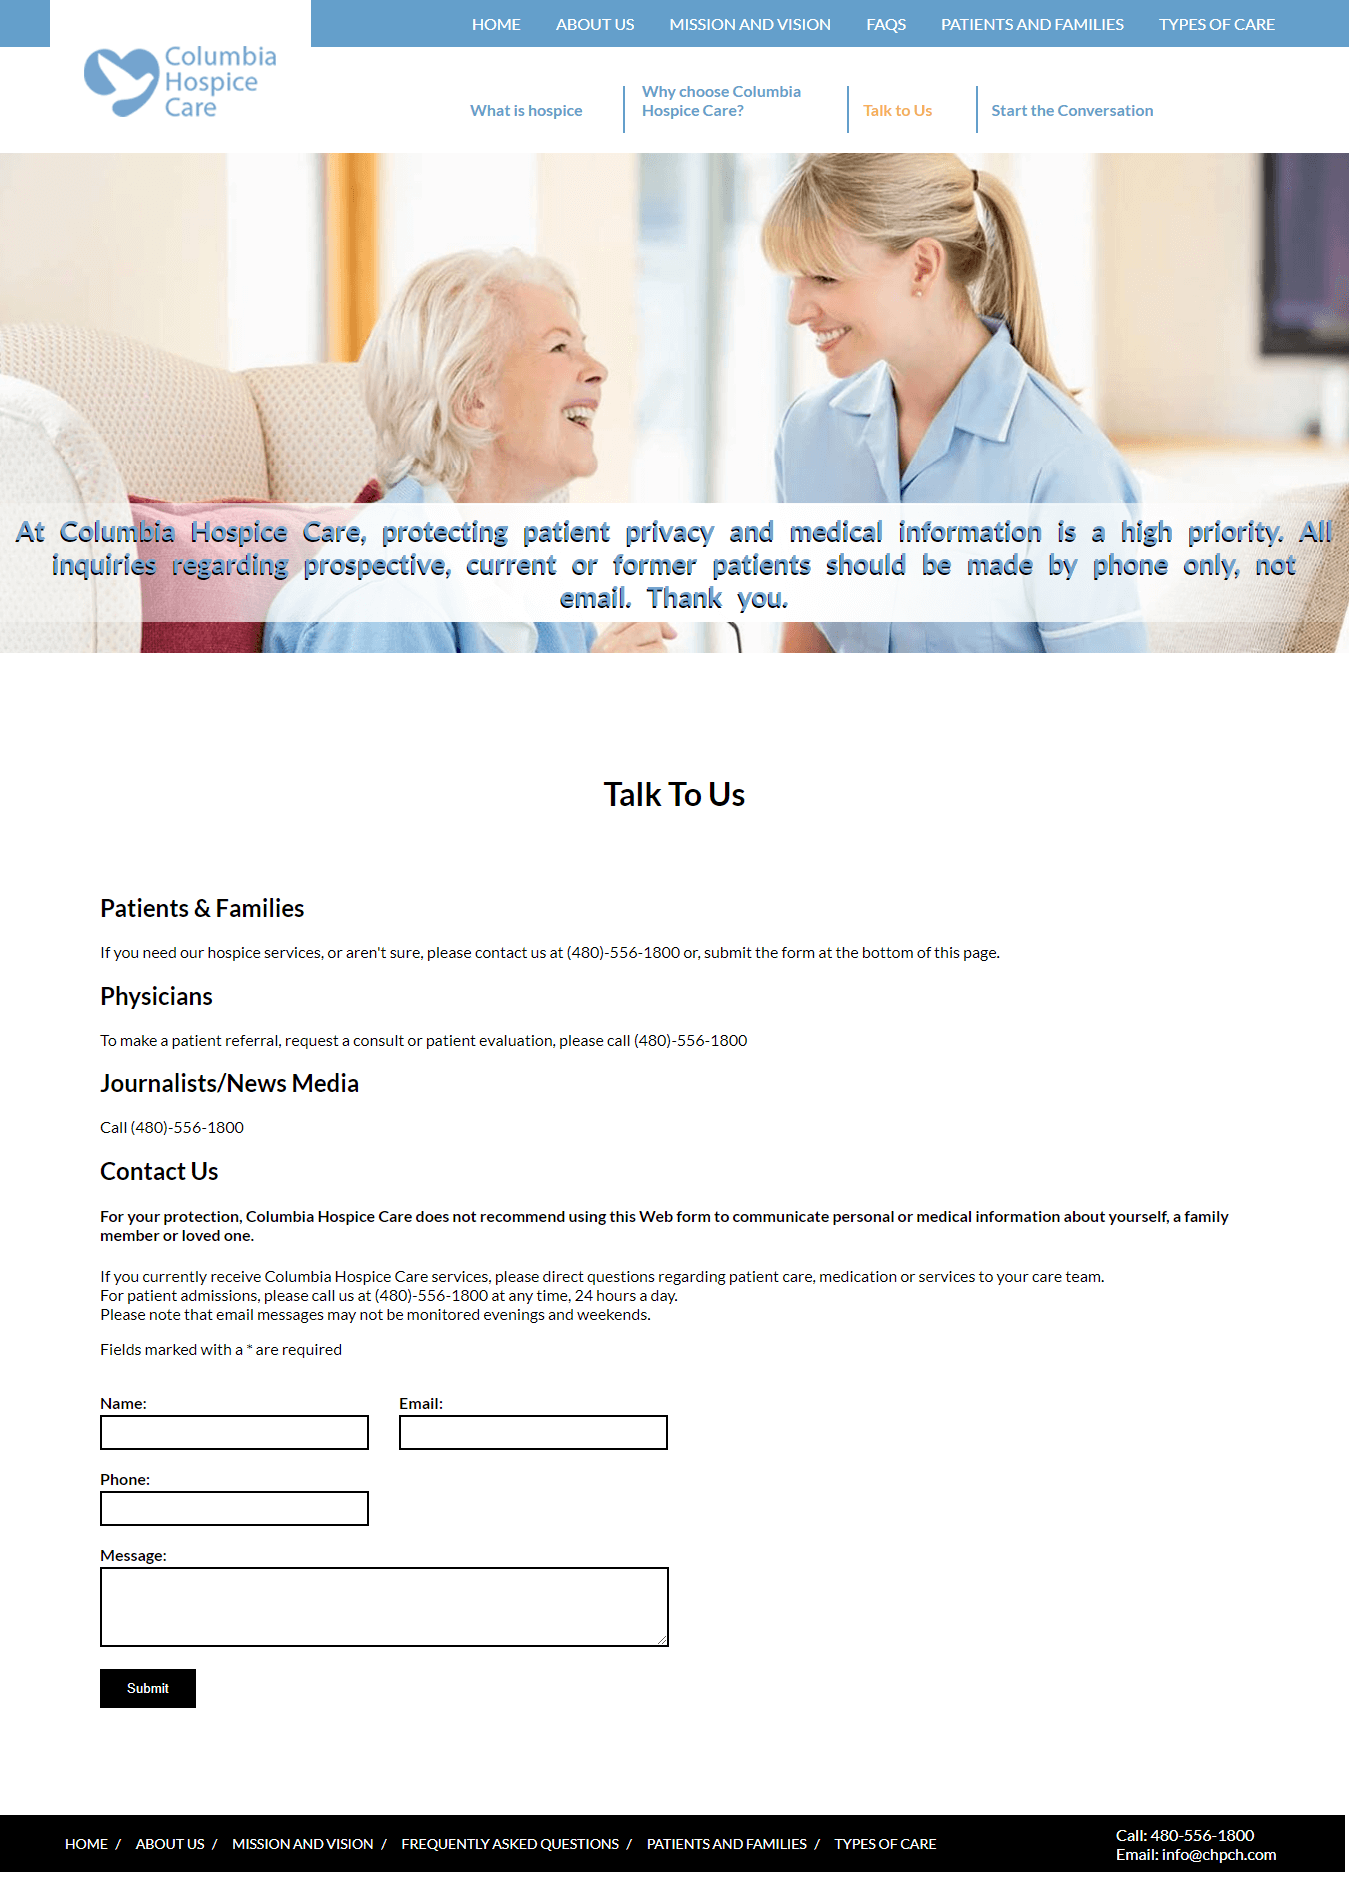 Columbia-Hospice-Care-Contact